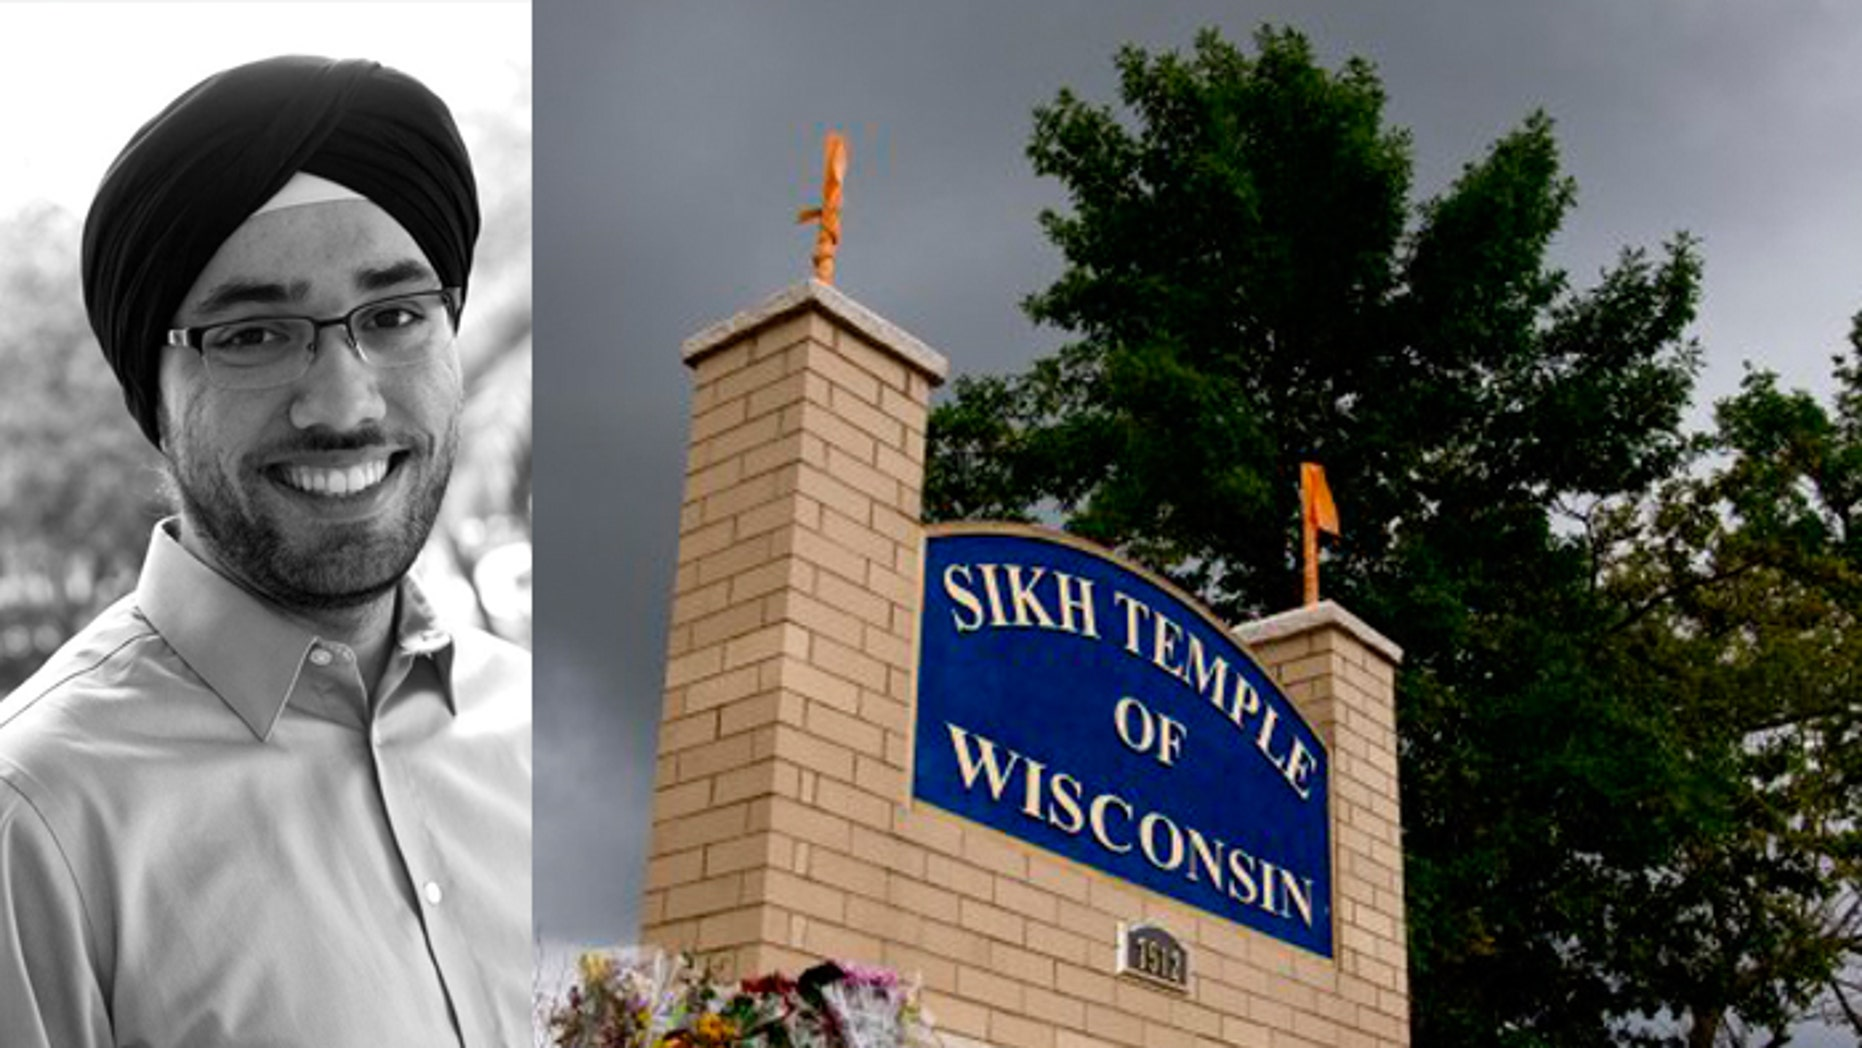 Sim Singh carried a legal gun even before the Wisconsin Sikh Temple massacre.